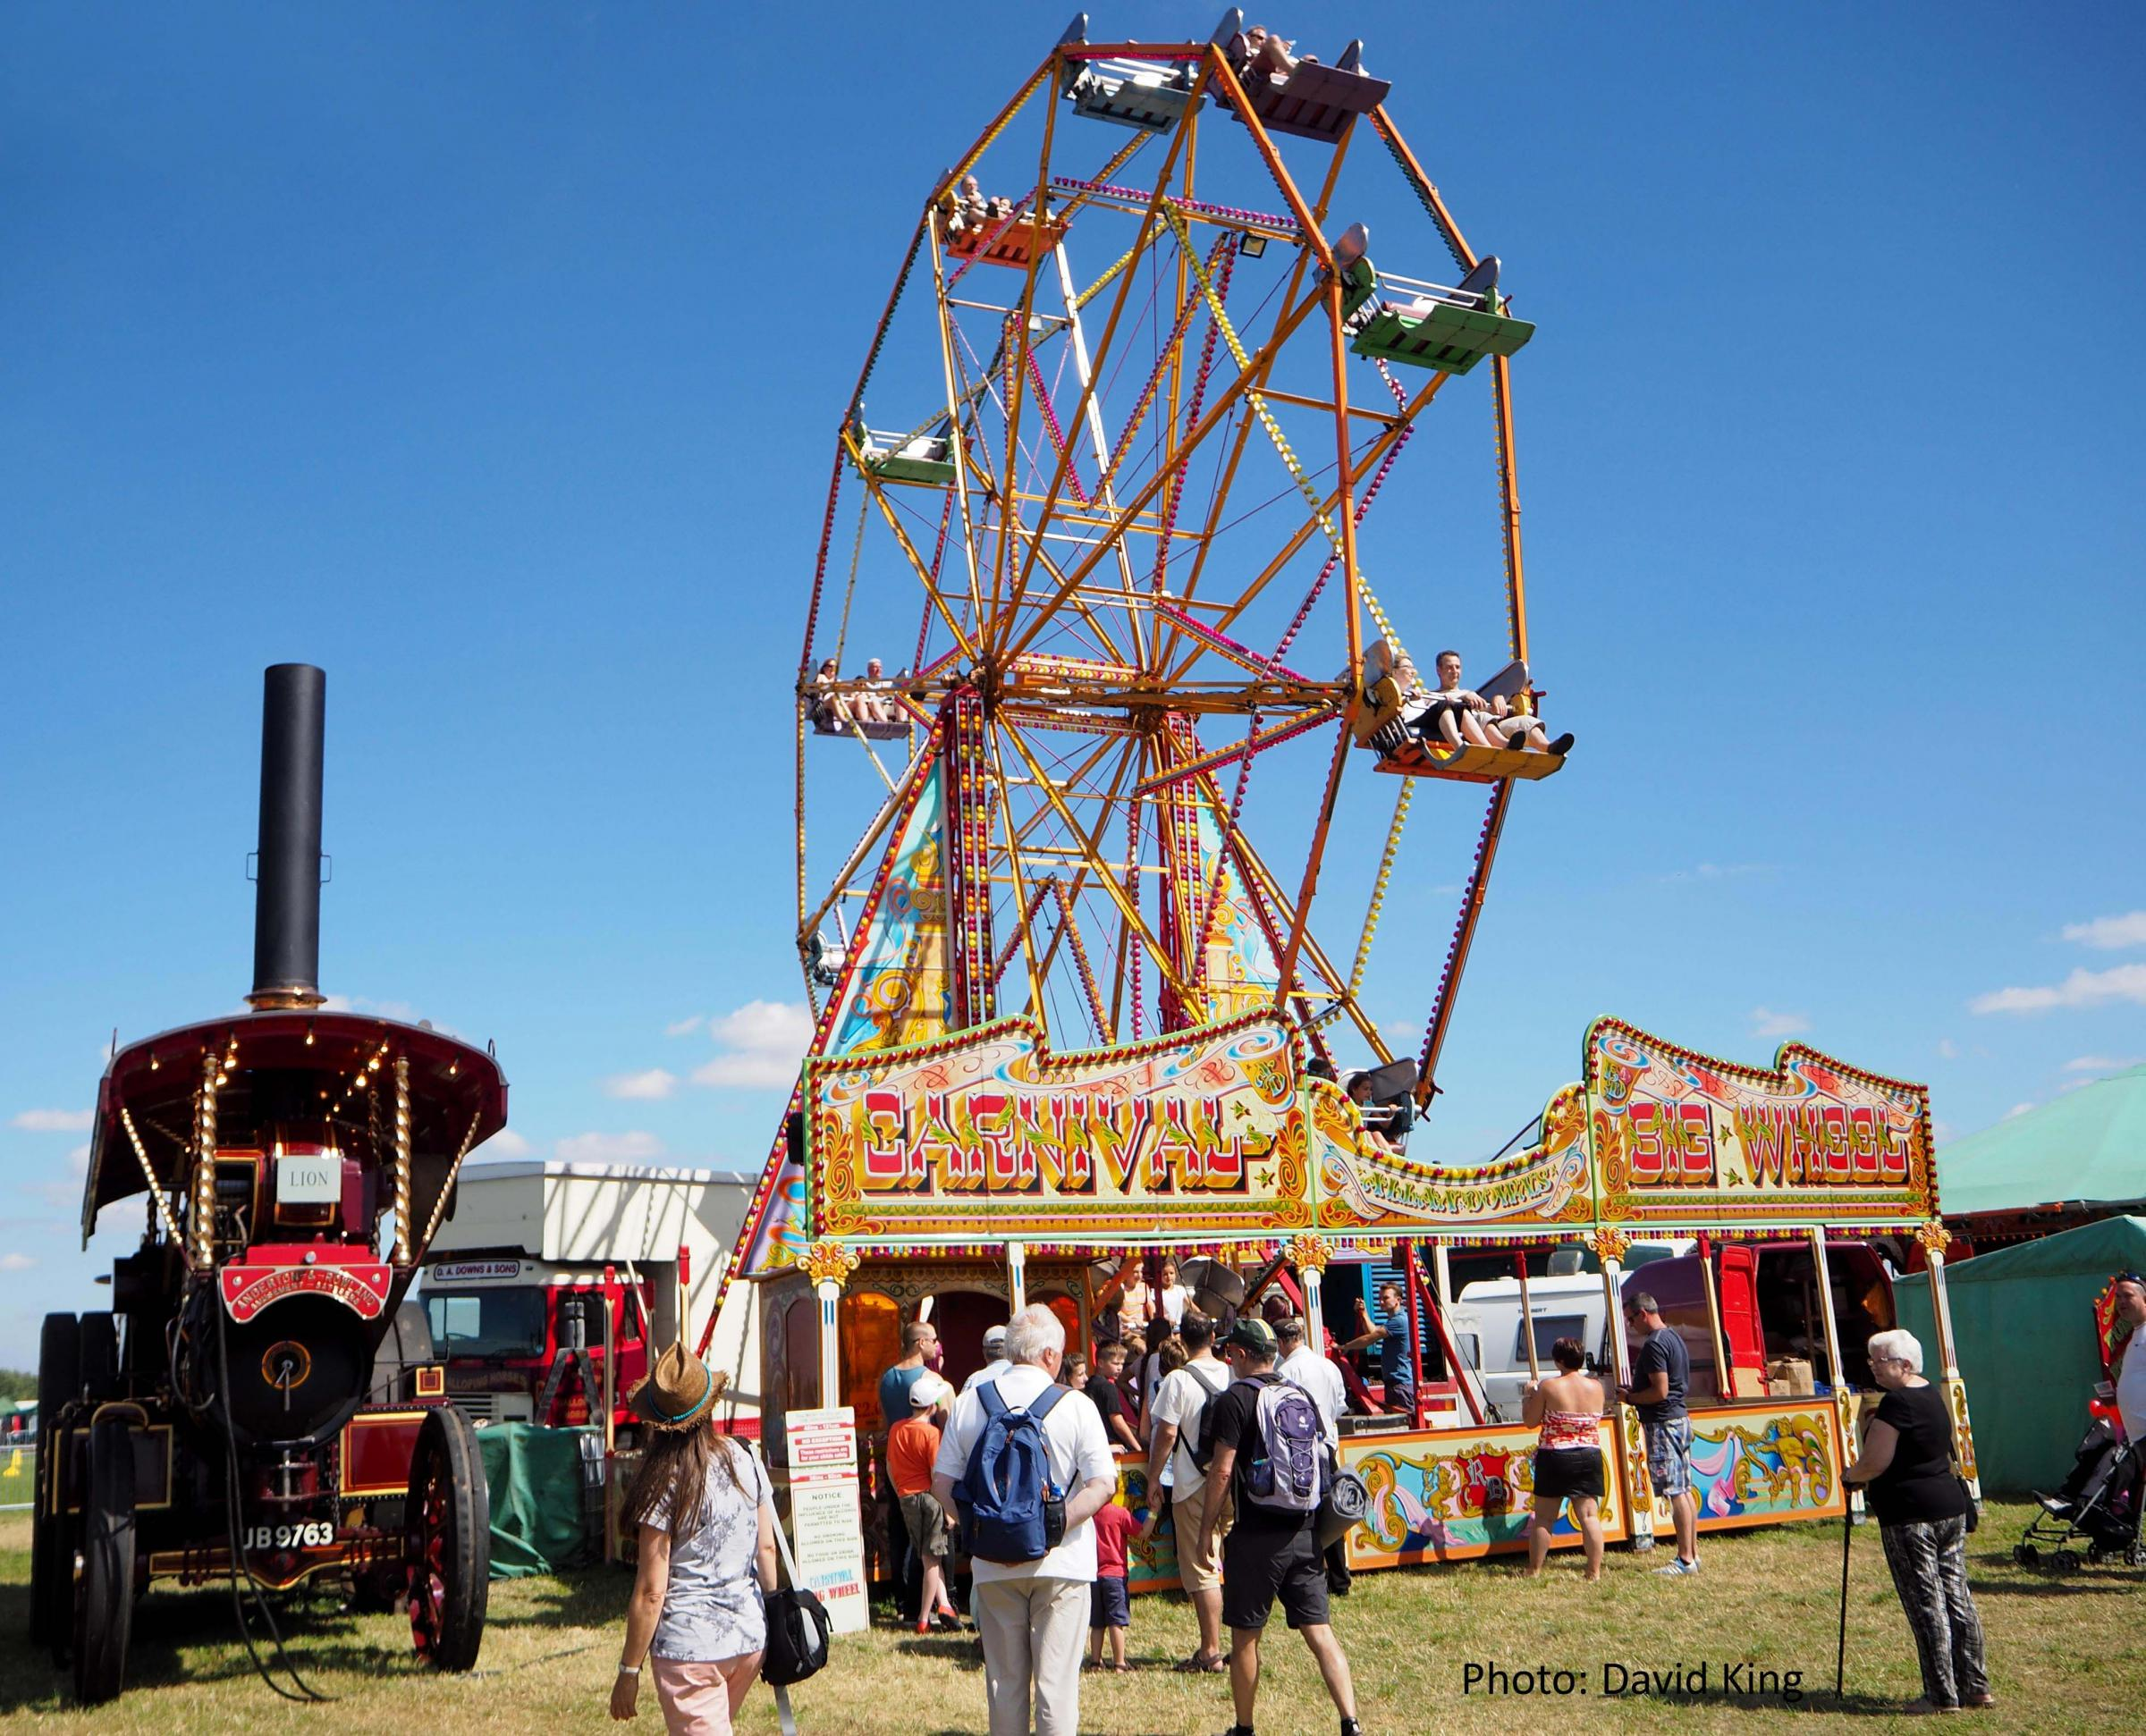 The 45th Annual Gloucestershire Vintage & Country Extravangaza